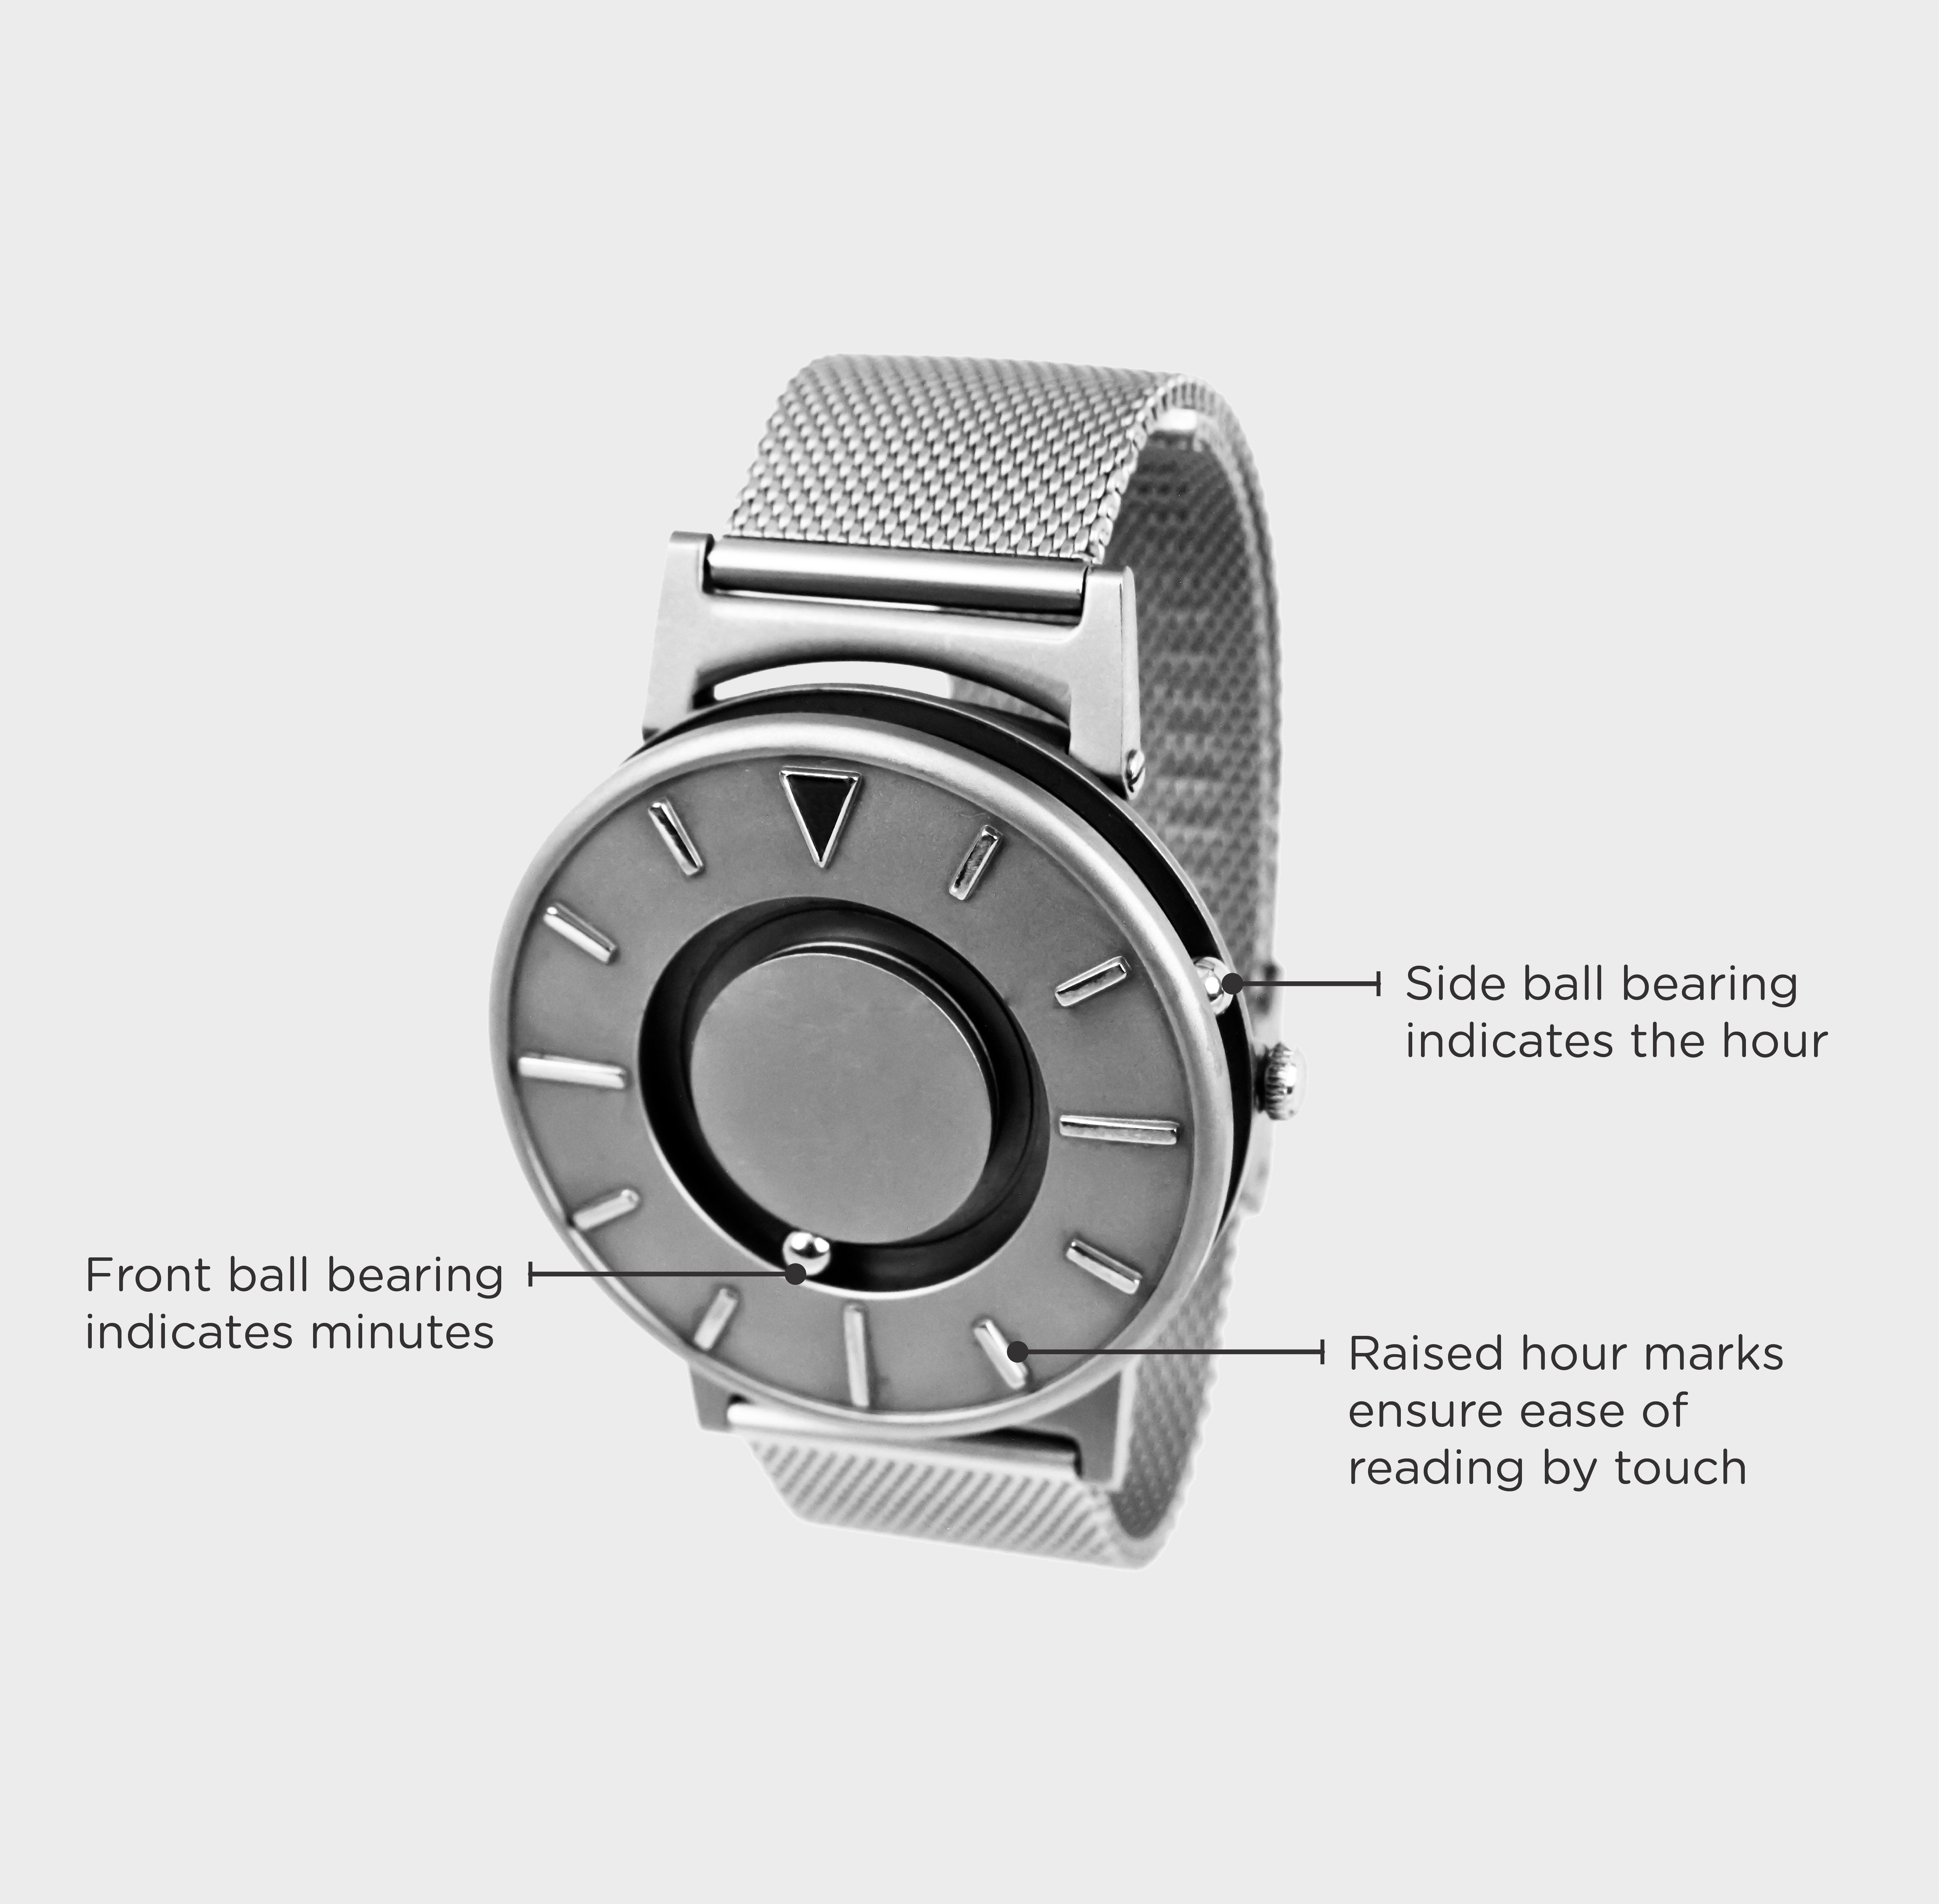 auto girredsec gp the blinds ss for blind watches